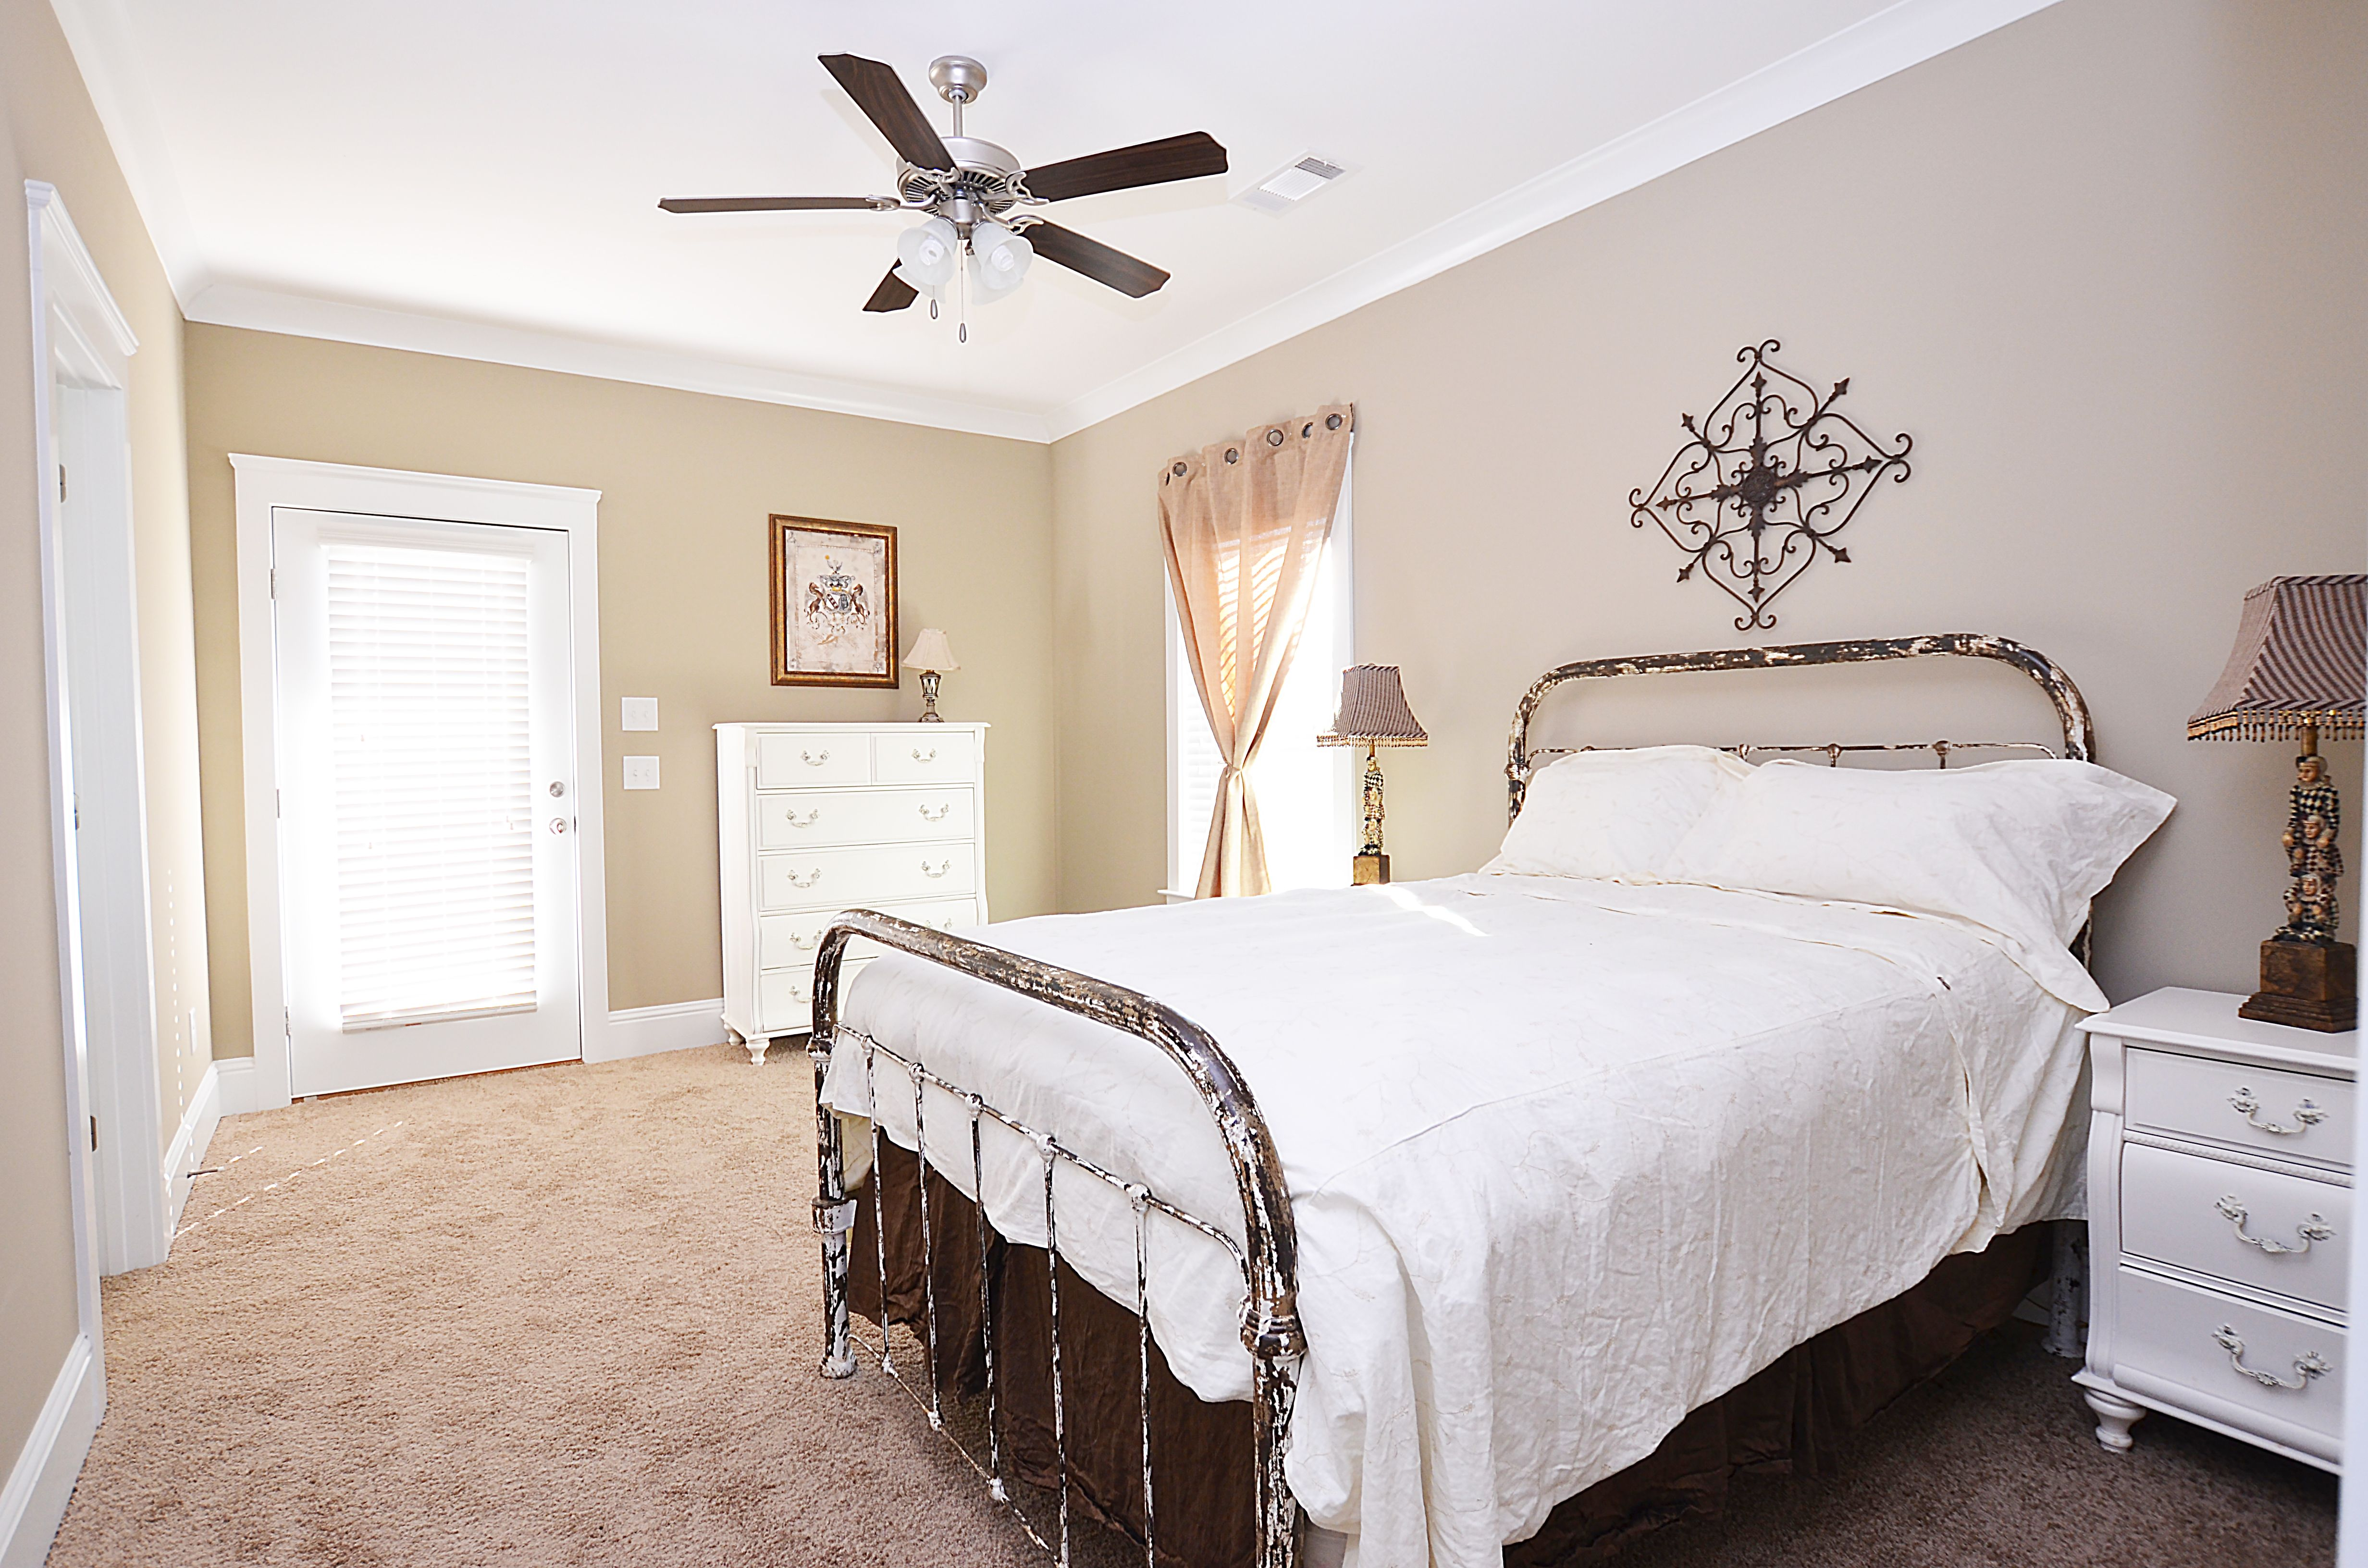 Bedroom featured in The Kavanagh By  NRB Properties, LLC in Montgomery, AL